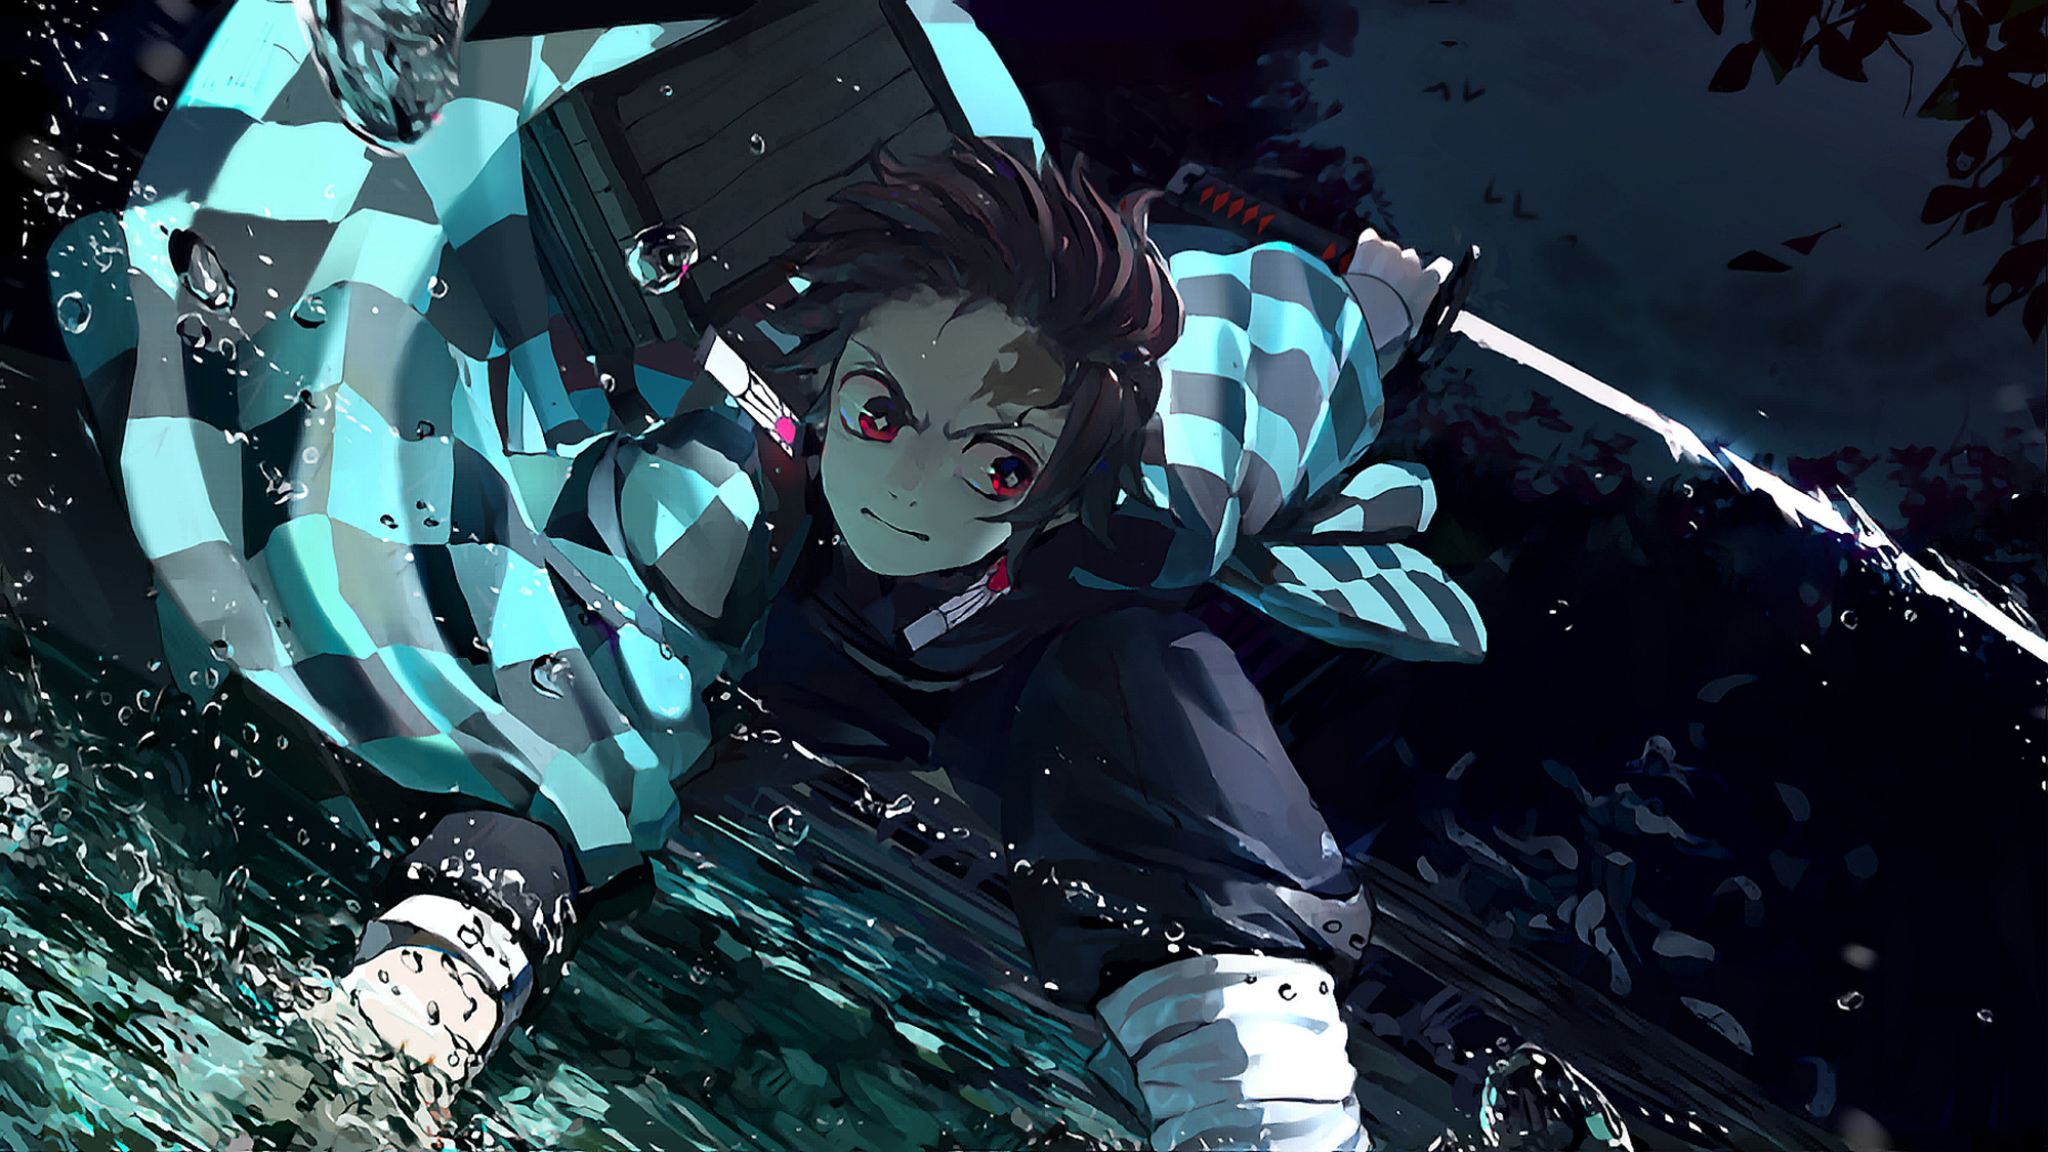 2048x1152 Demon Slayer Tanjirou Kamado 2048x1152 Resolution